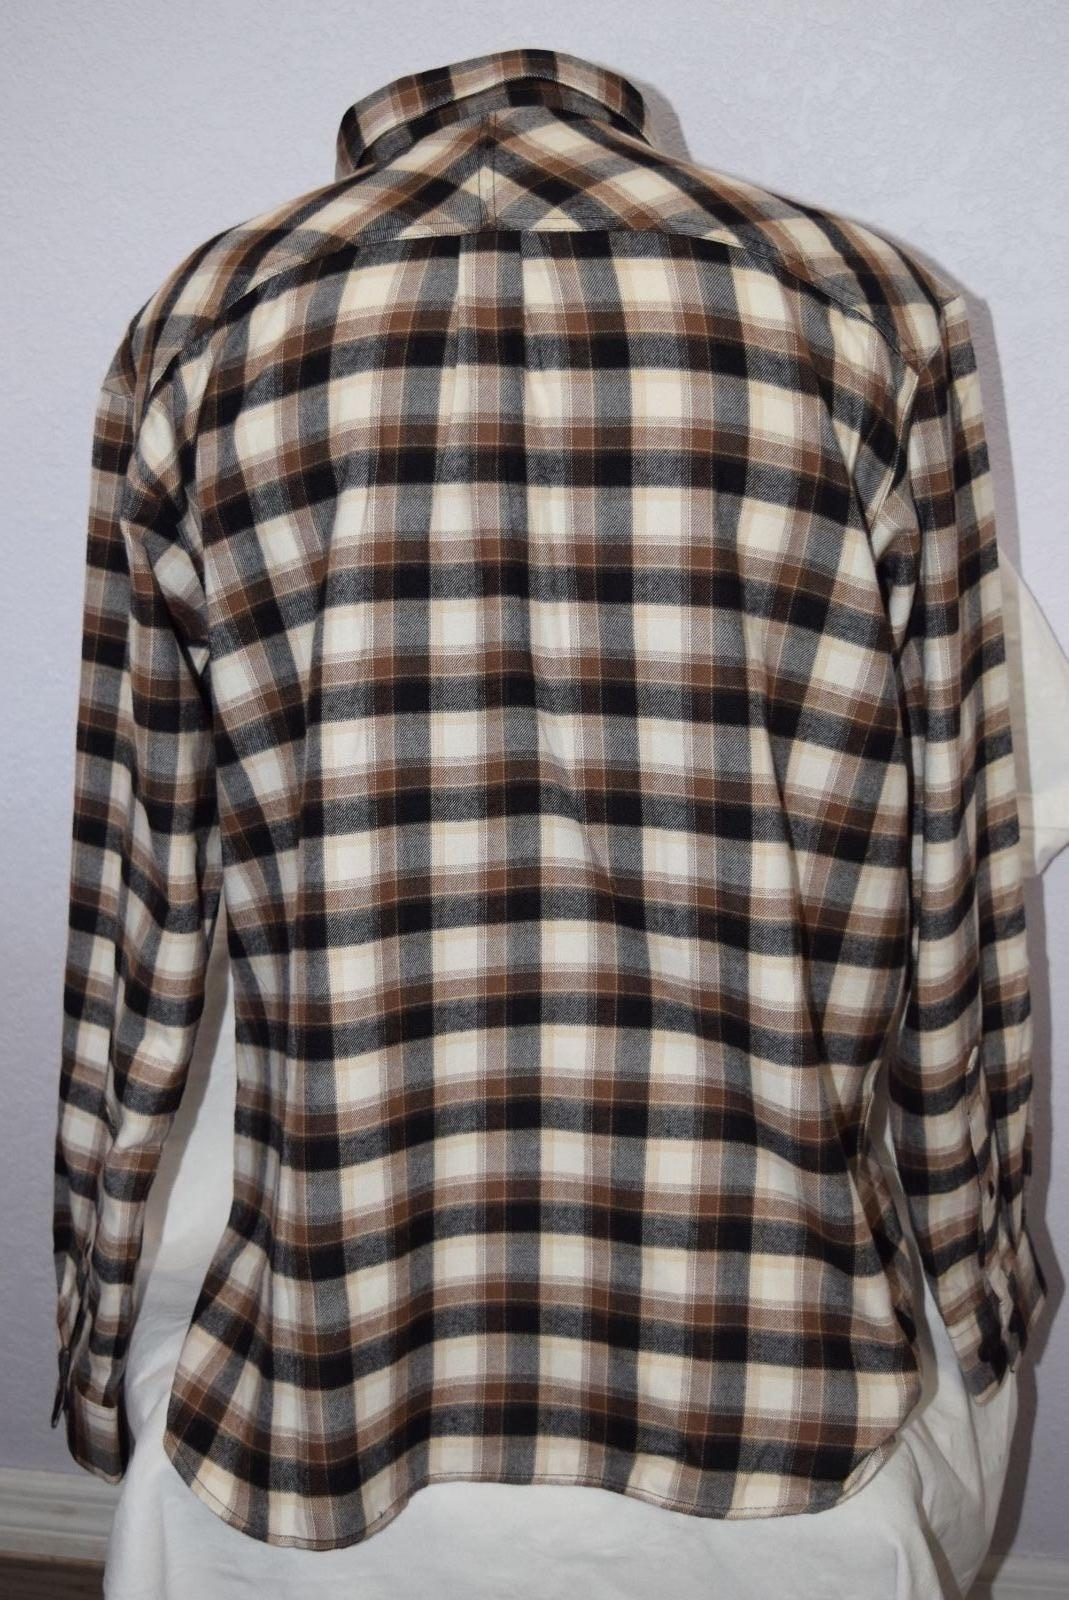 NWT! Columbia Men's Silver Ridge Flannel Long Shirt